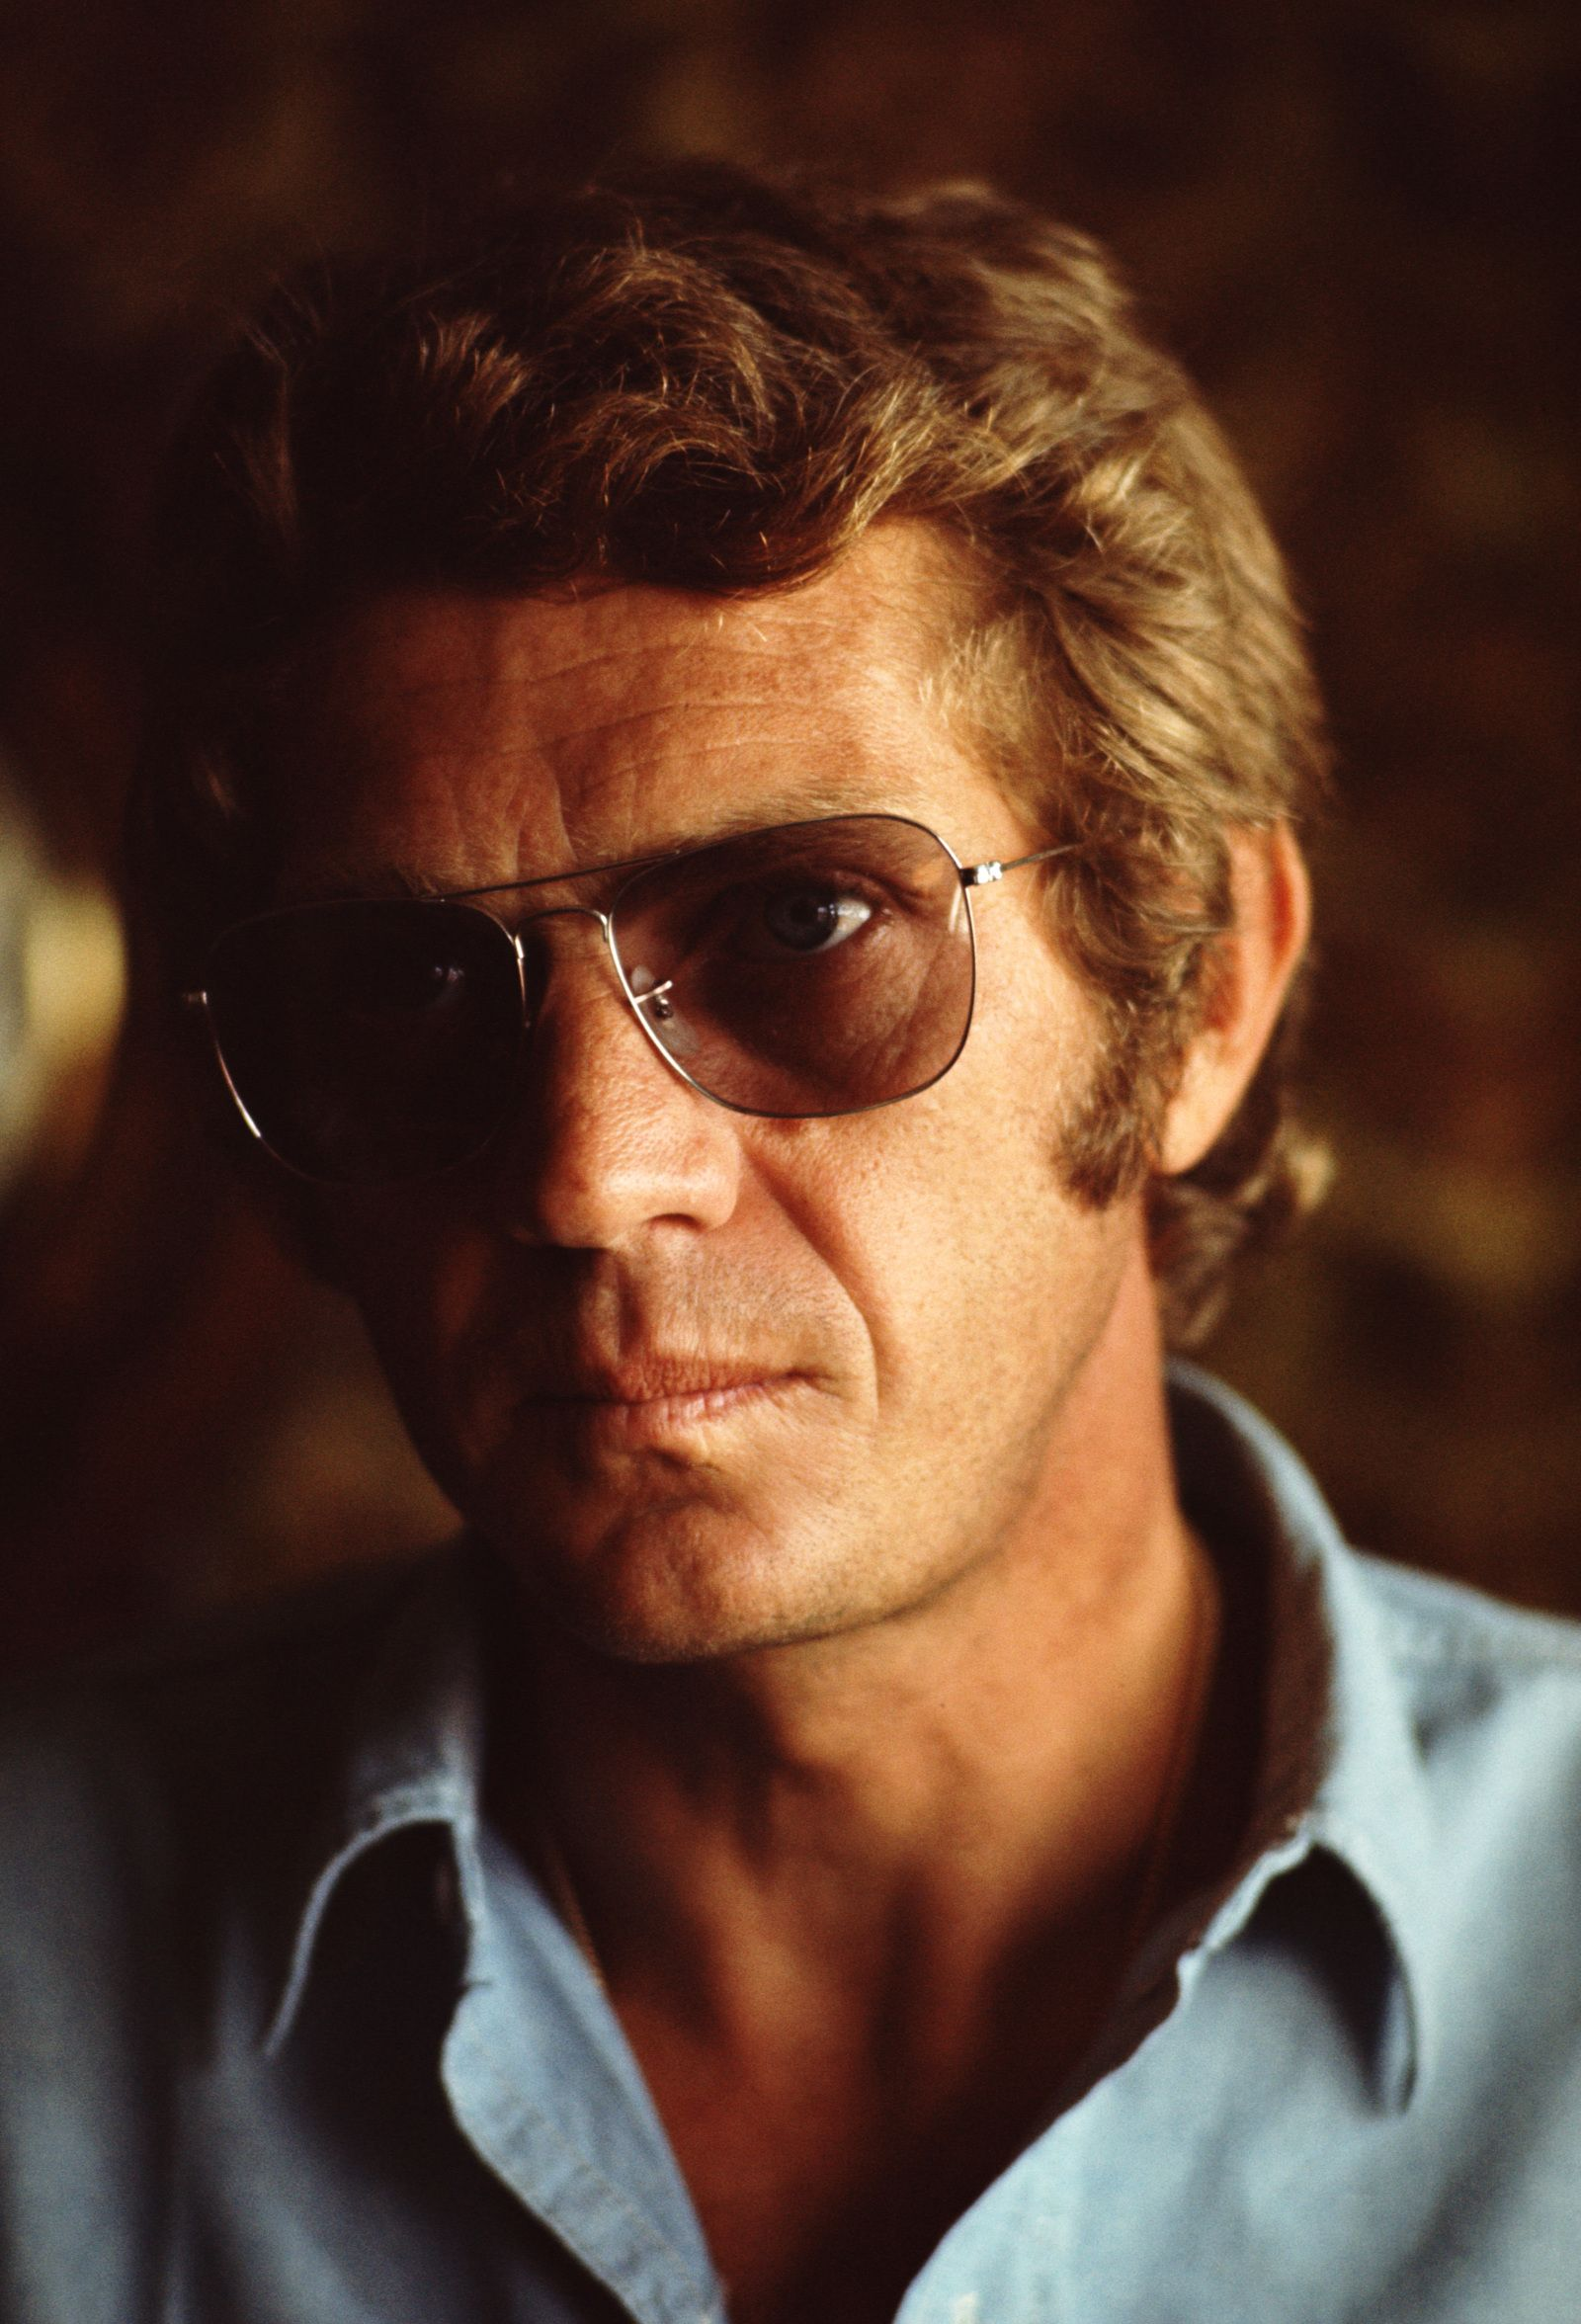 Steve McQueen Is Still the King of Cool 85 Years After His Birth  - Esquire.com